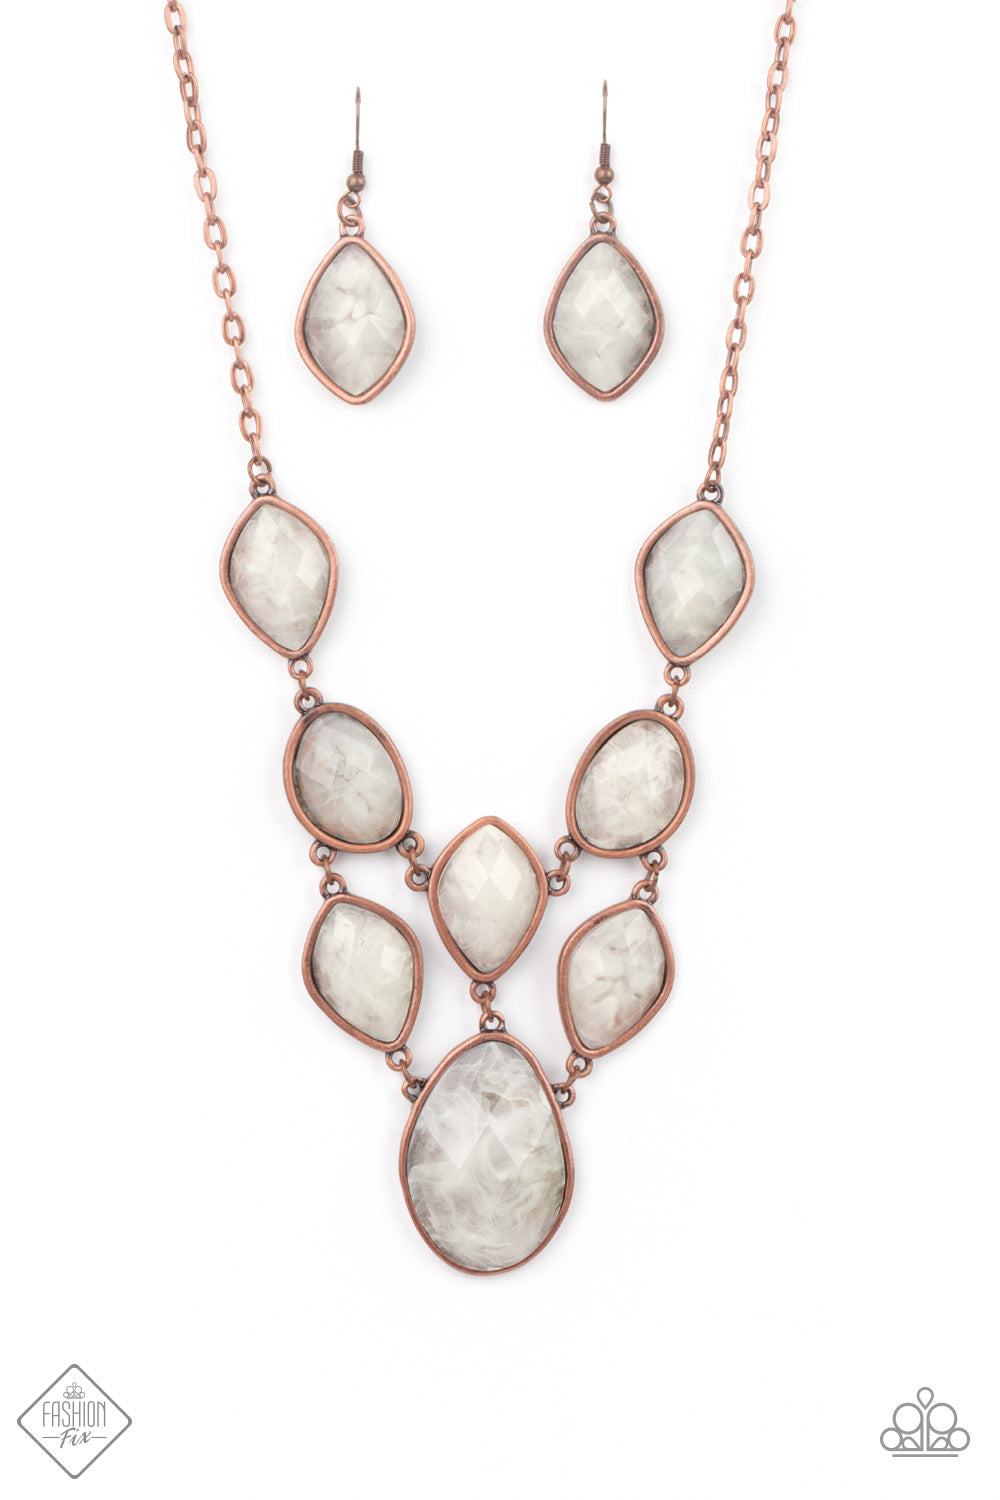 Paparazzi Necklace Fashion Fix Jan 2021 ~ Opulently Oracle - Copper